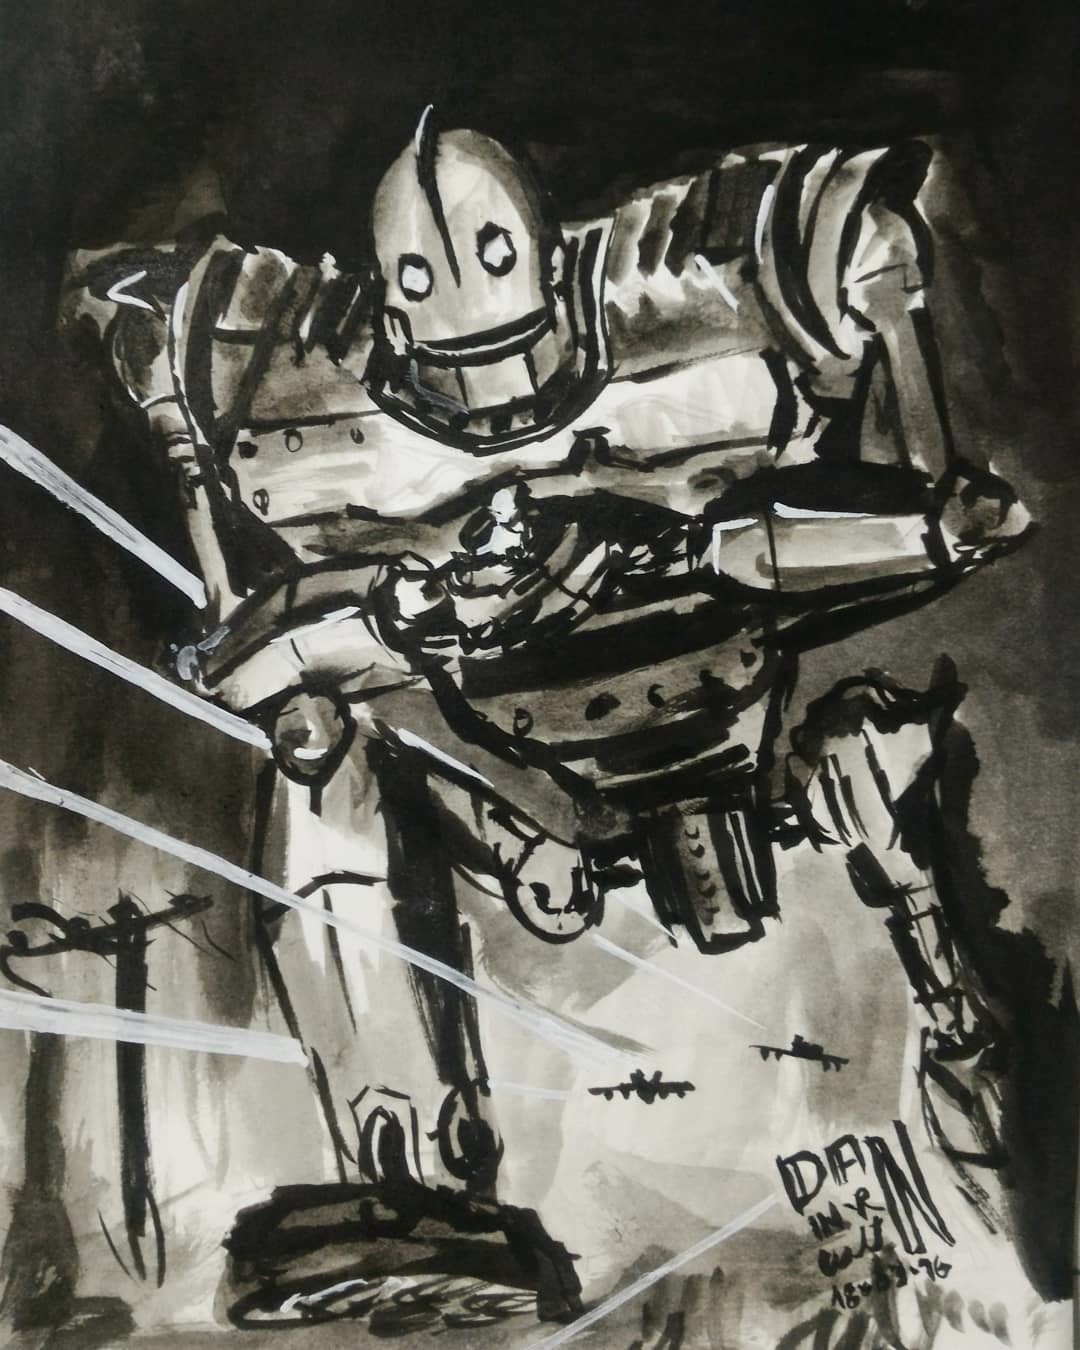 March Of Robots 16 - The Iron Giant (1999). Nanquim.